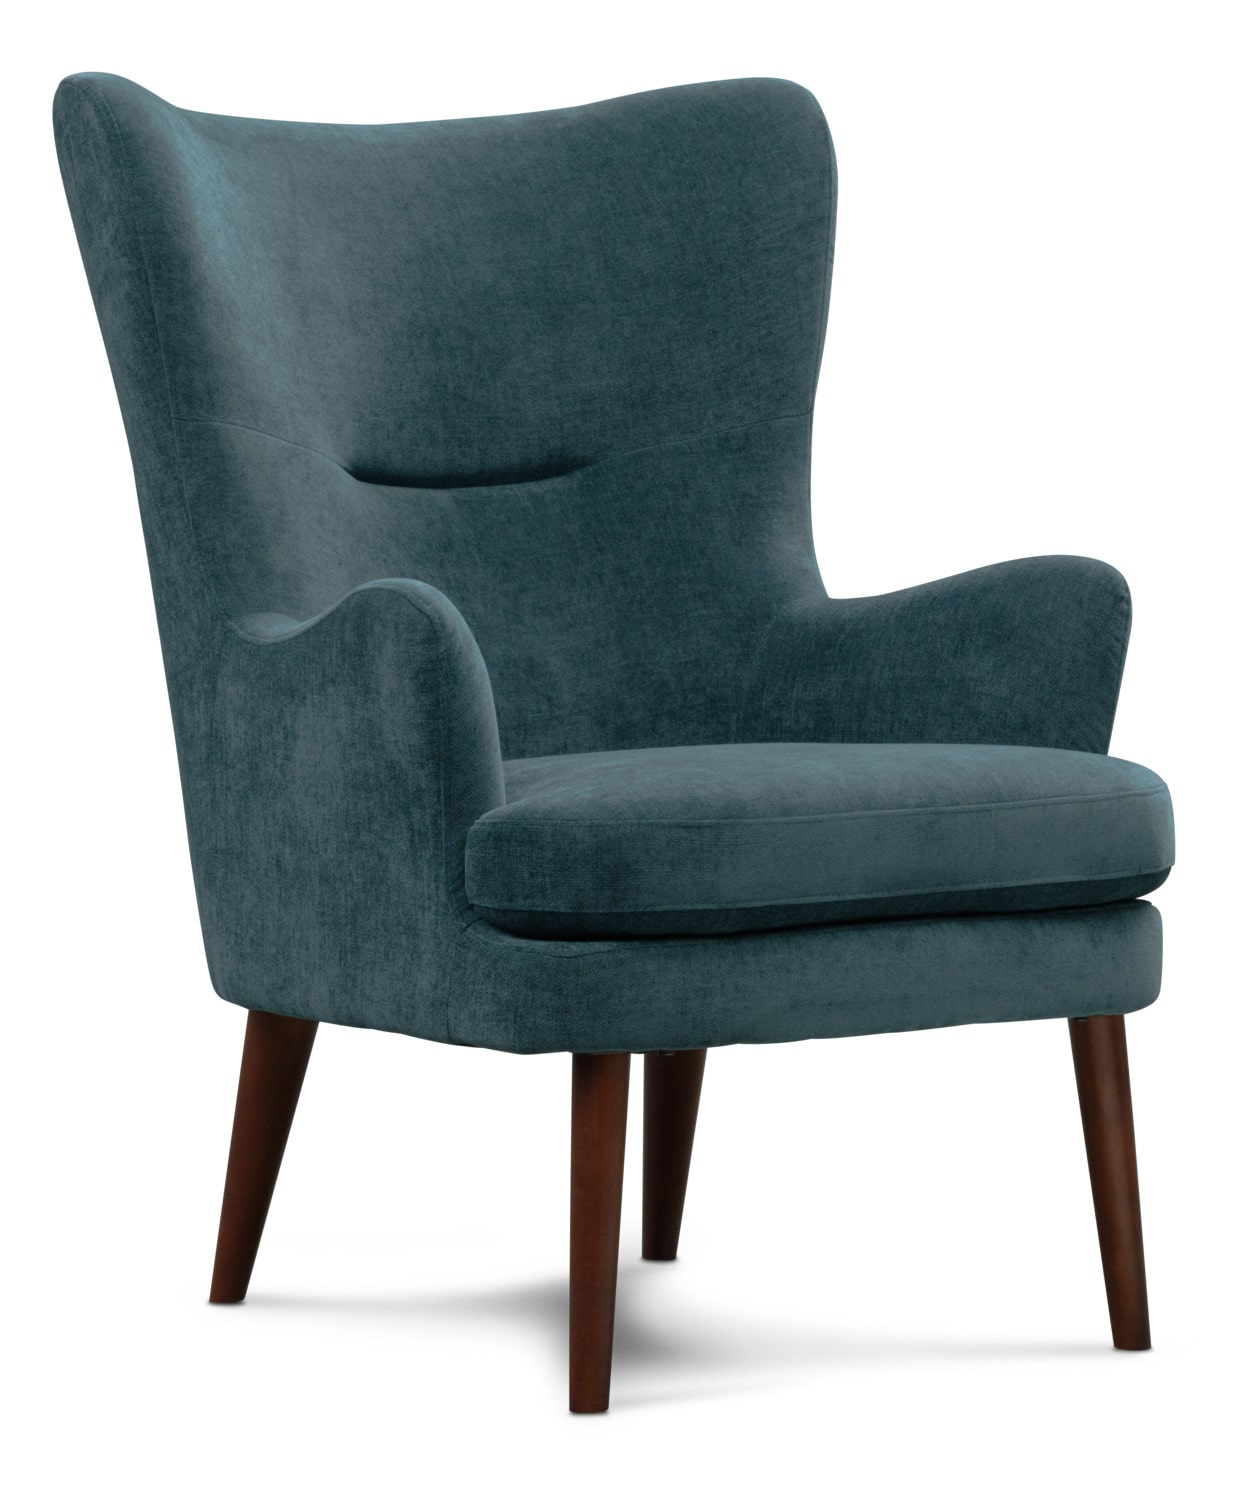 teal accent chair round hanging perkins american signature furniture